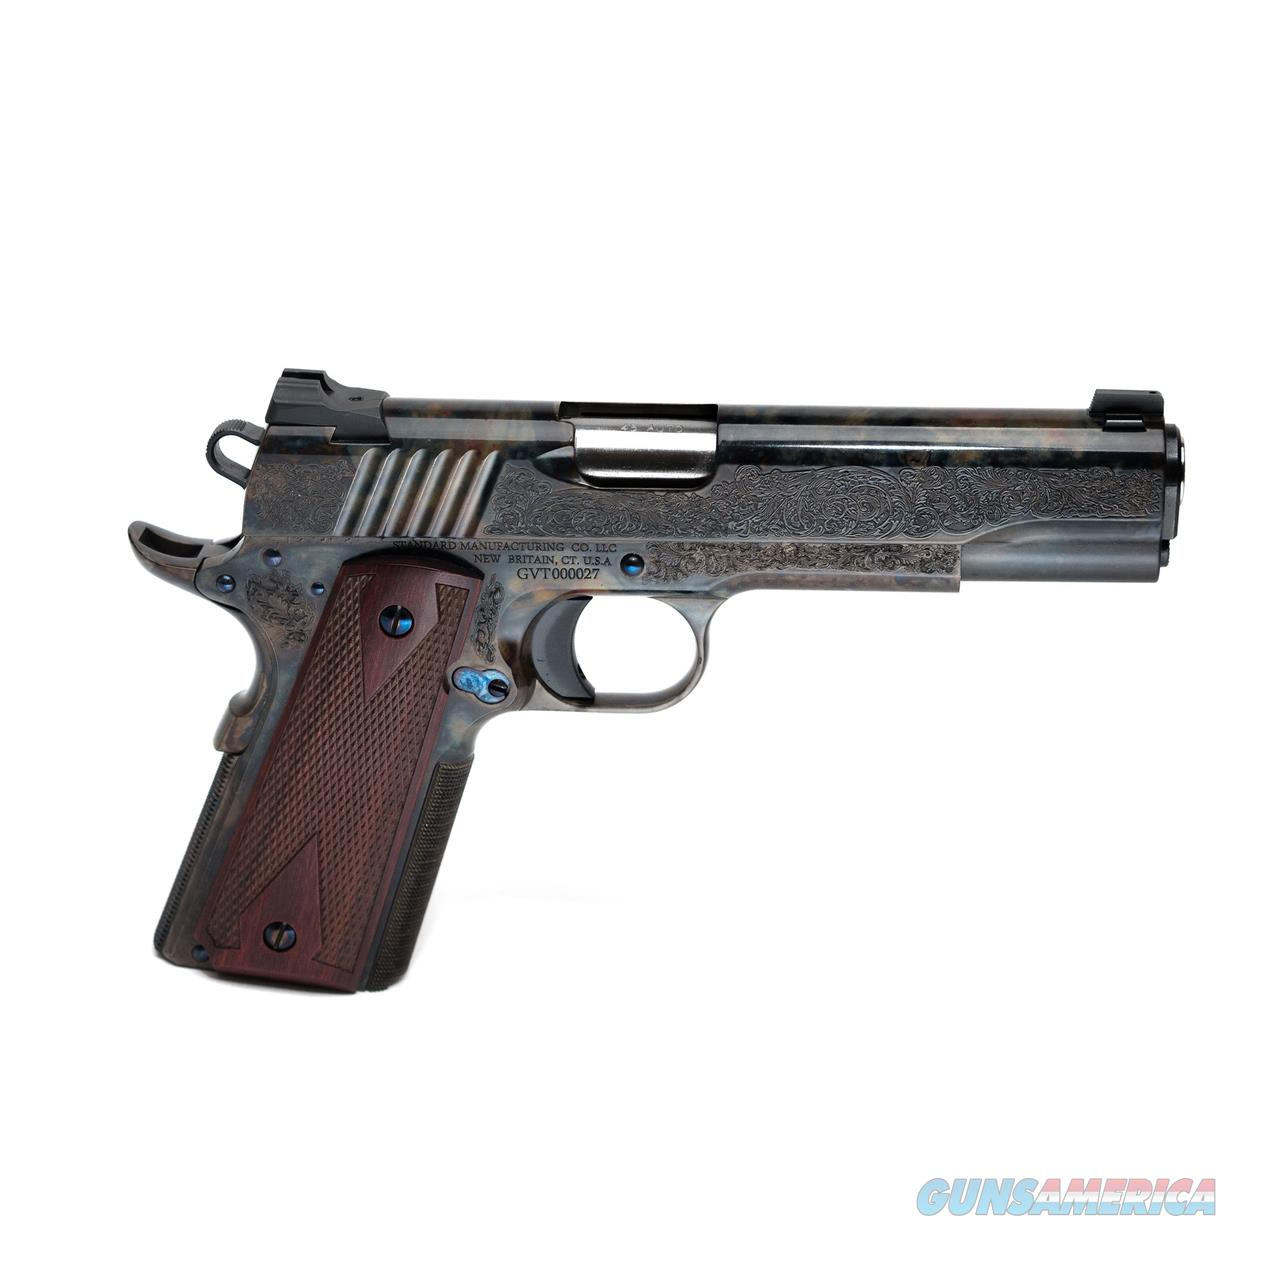 Standard Manufacturing 1911 Case Colored #1 Engraved  Guns > Pistols > 1911 Pistol Copies (non-Colt)